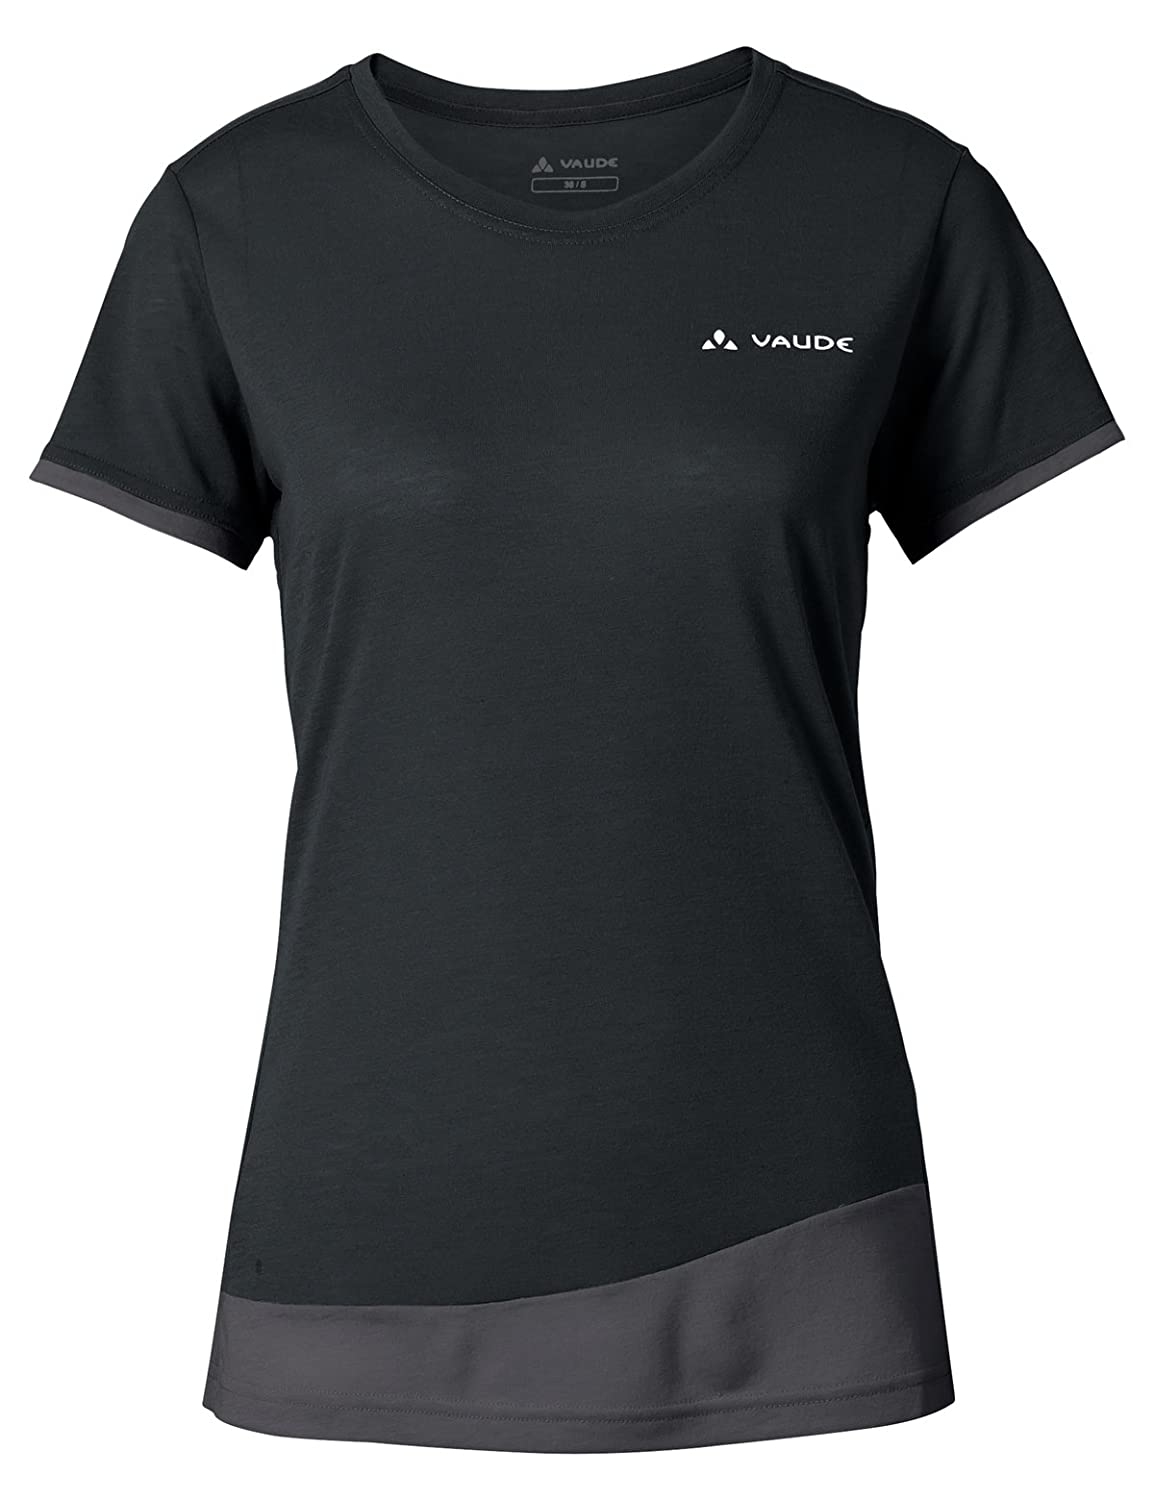 Cooling and Odor Resistant Quick Drying Drirelease T-Shirt with Merino Wool Fast Drying VAUDE Womens Sveit T-Shirt